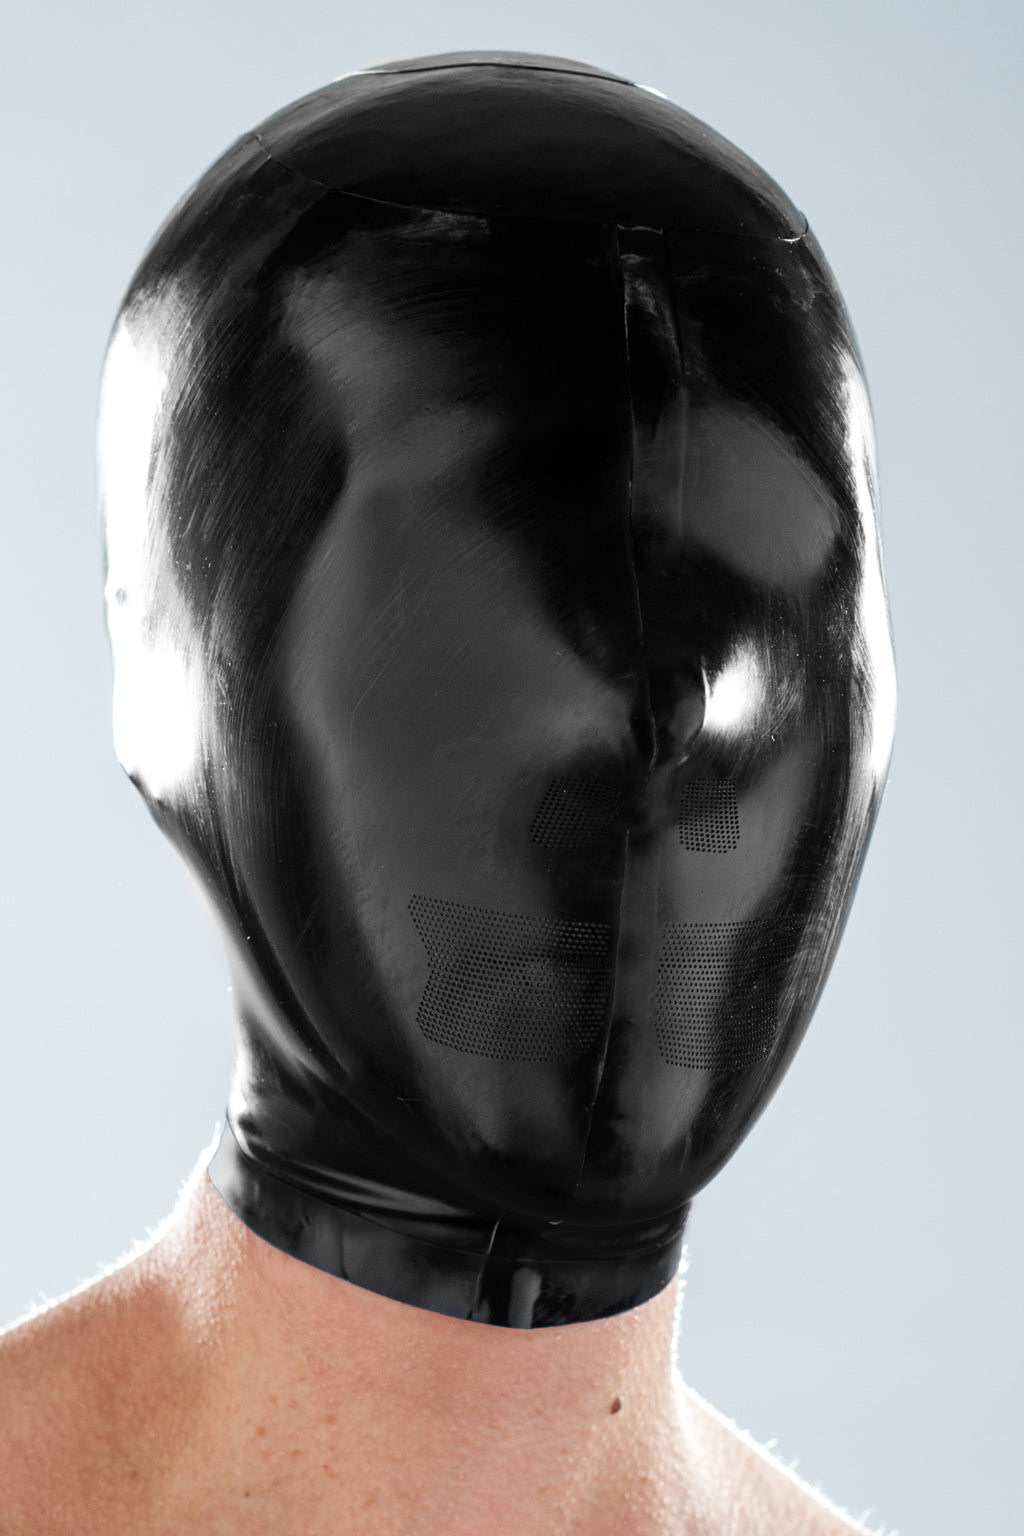 A person wearing a black micro breathe latex zentai enclosure hood.